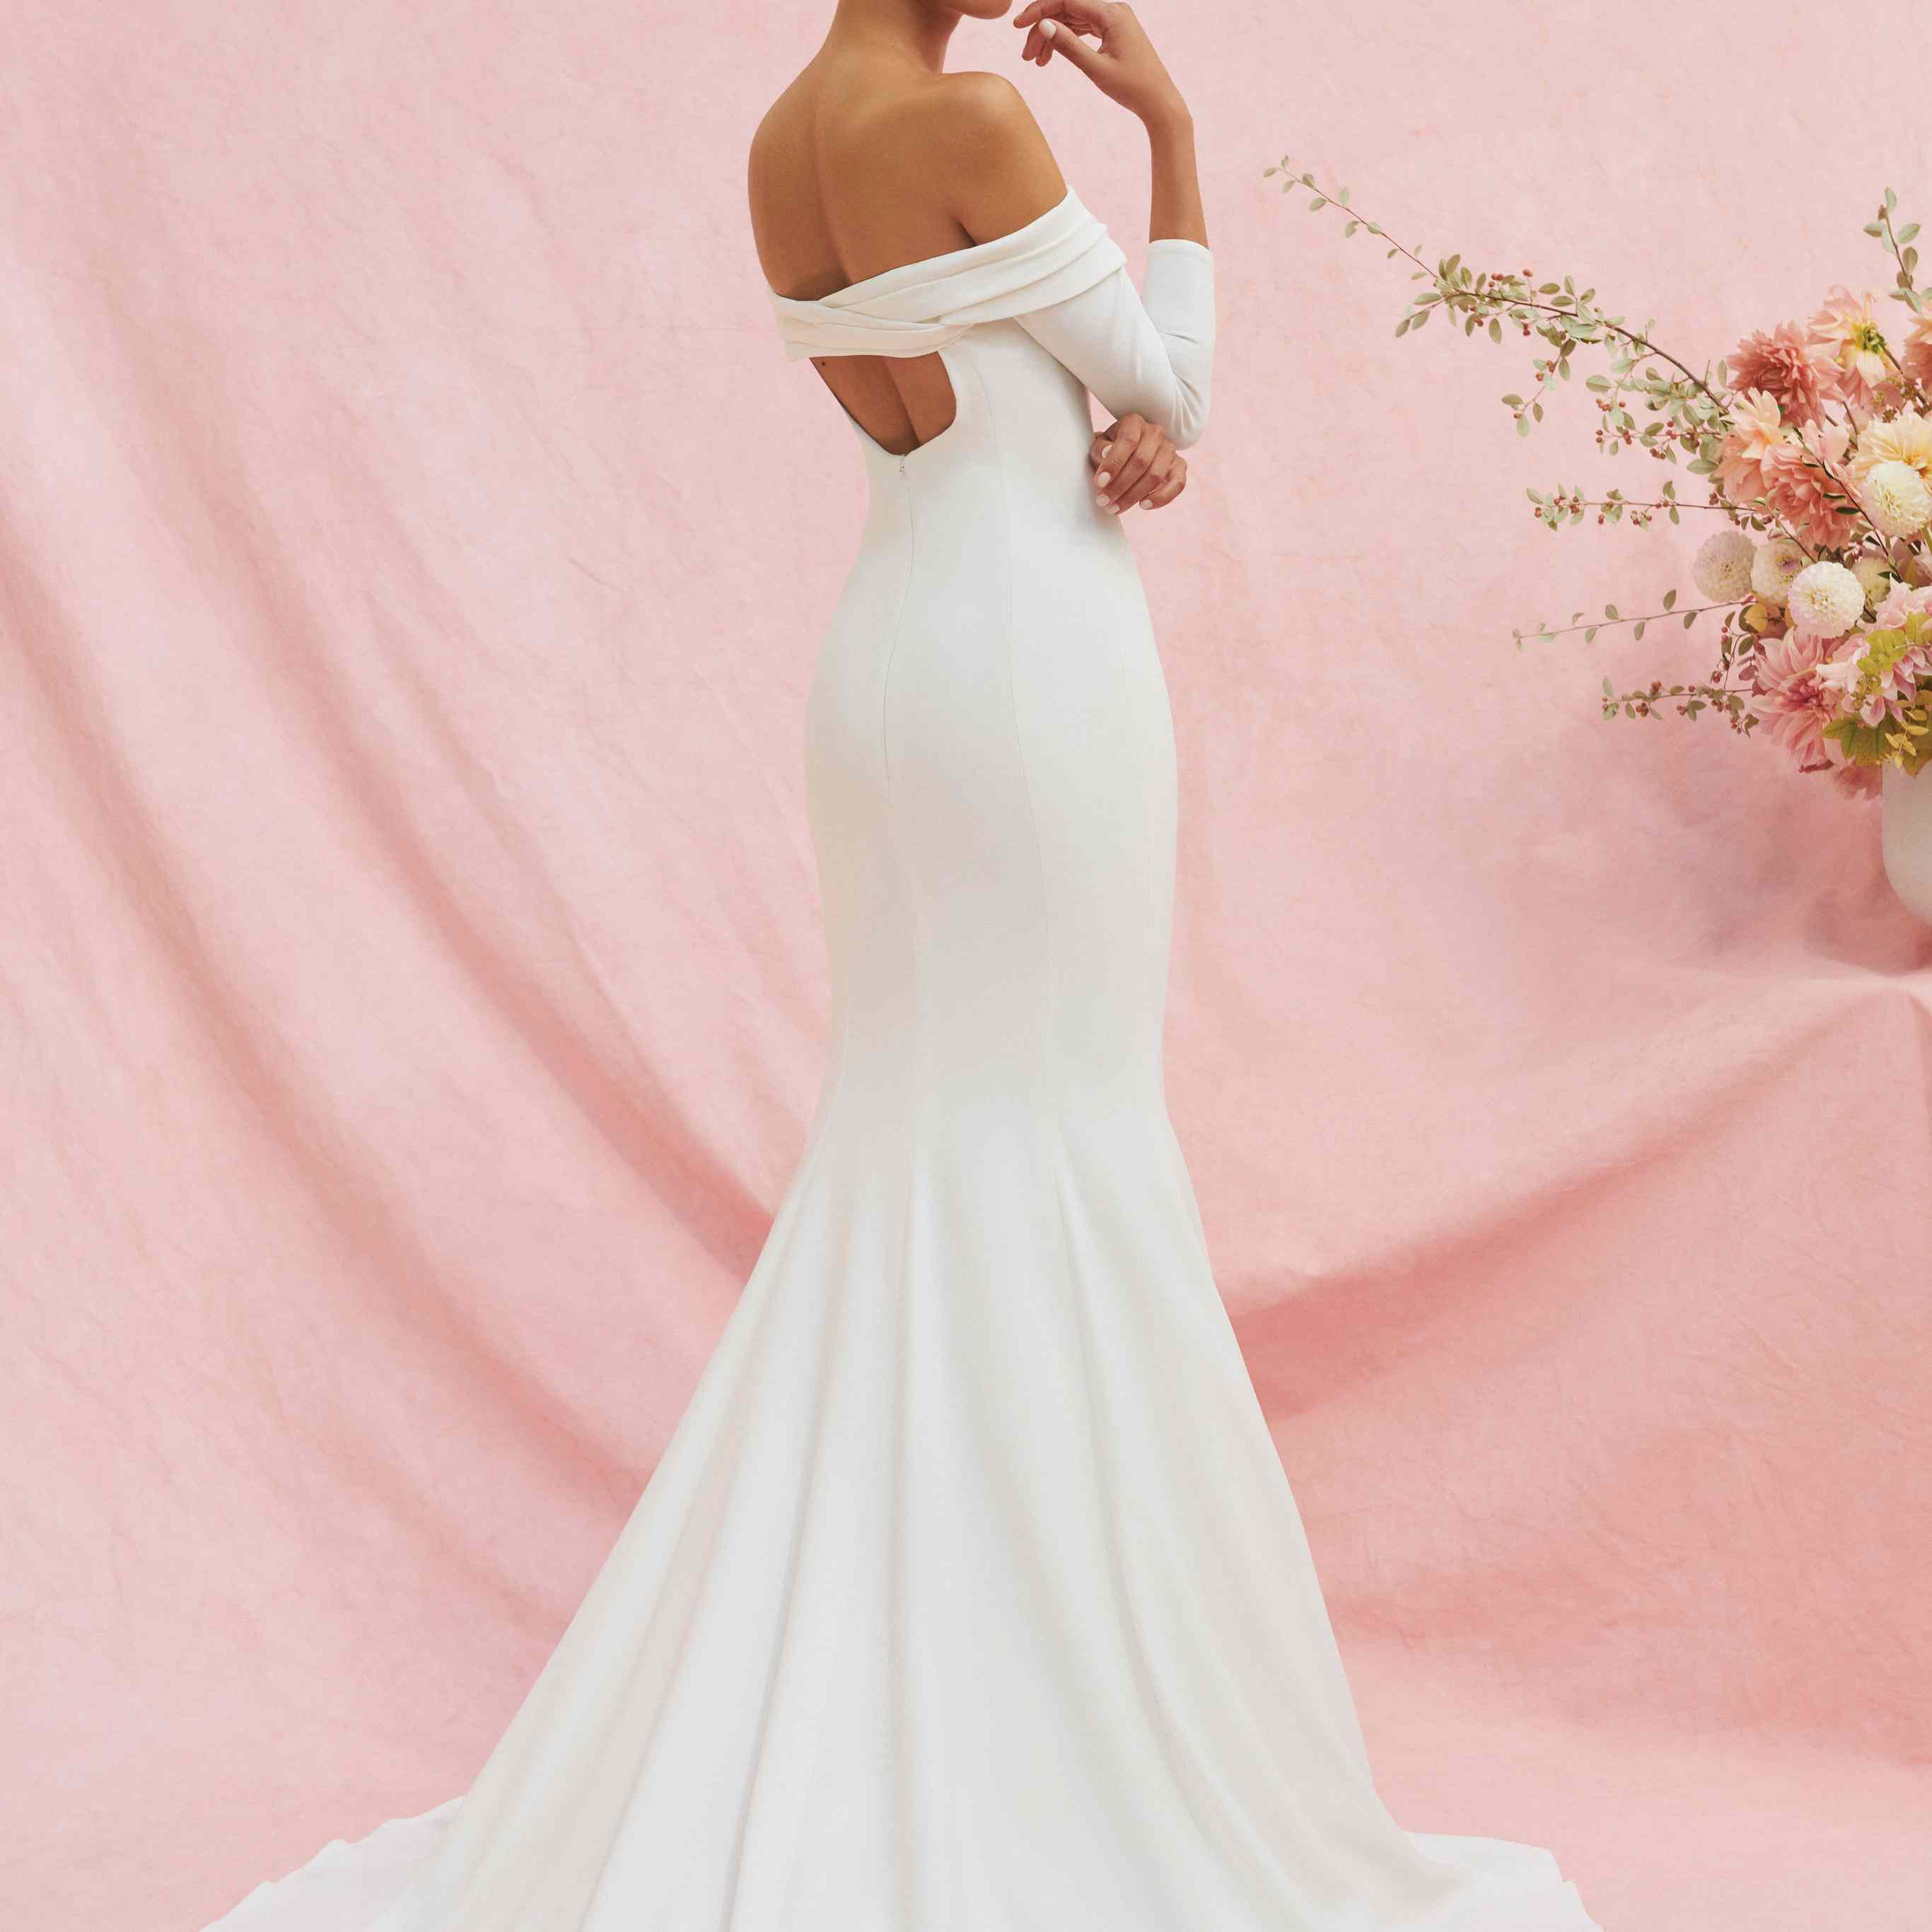 These Are The Wedding Dress Trends Our Editors Love For Fall 2020,Used Wedding Dress For Sale